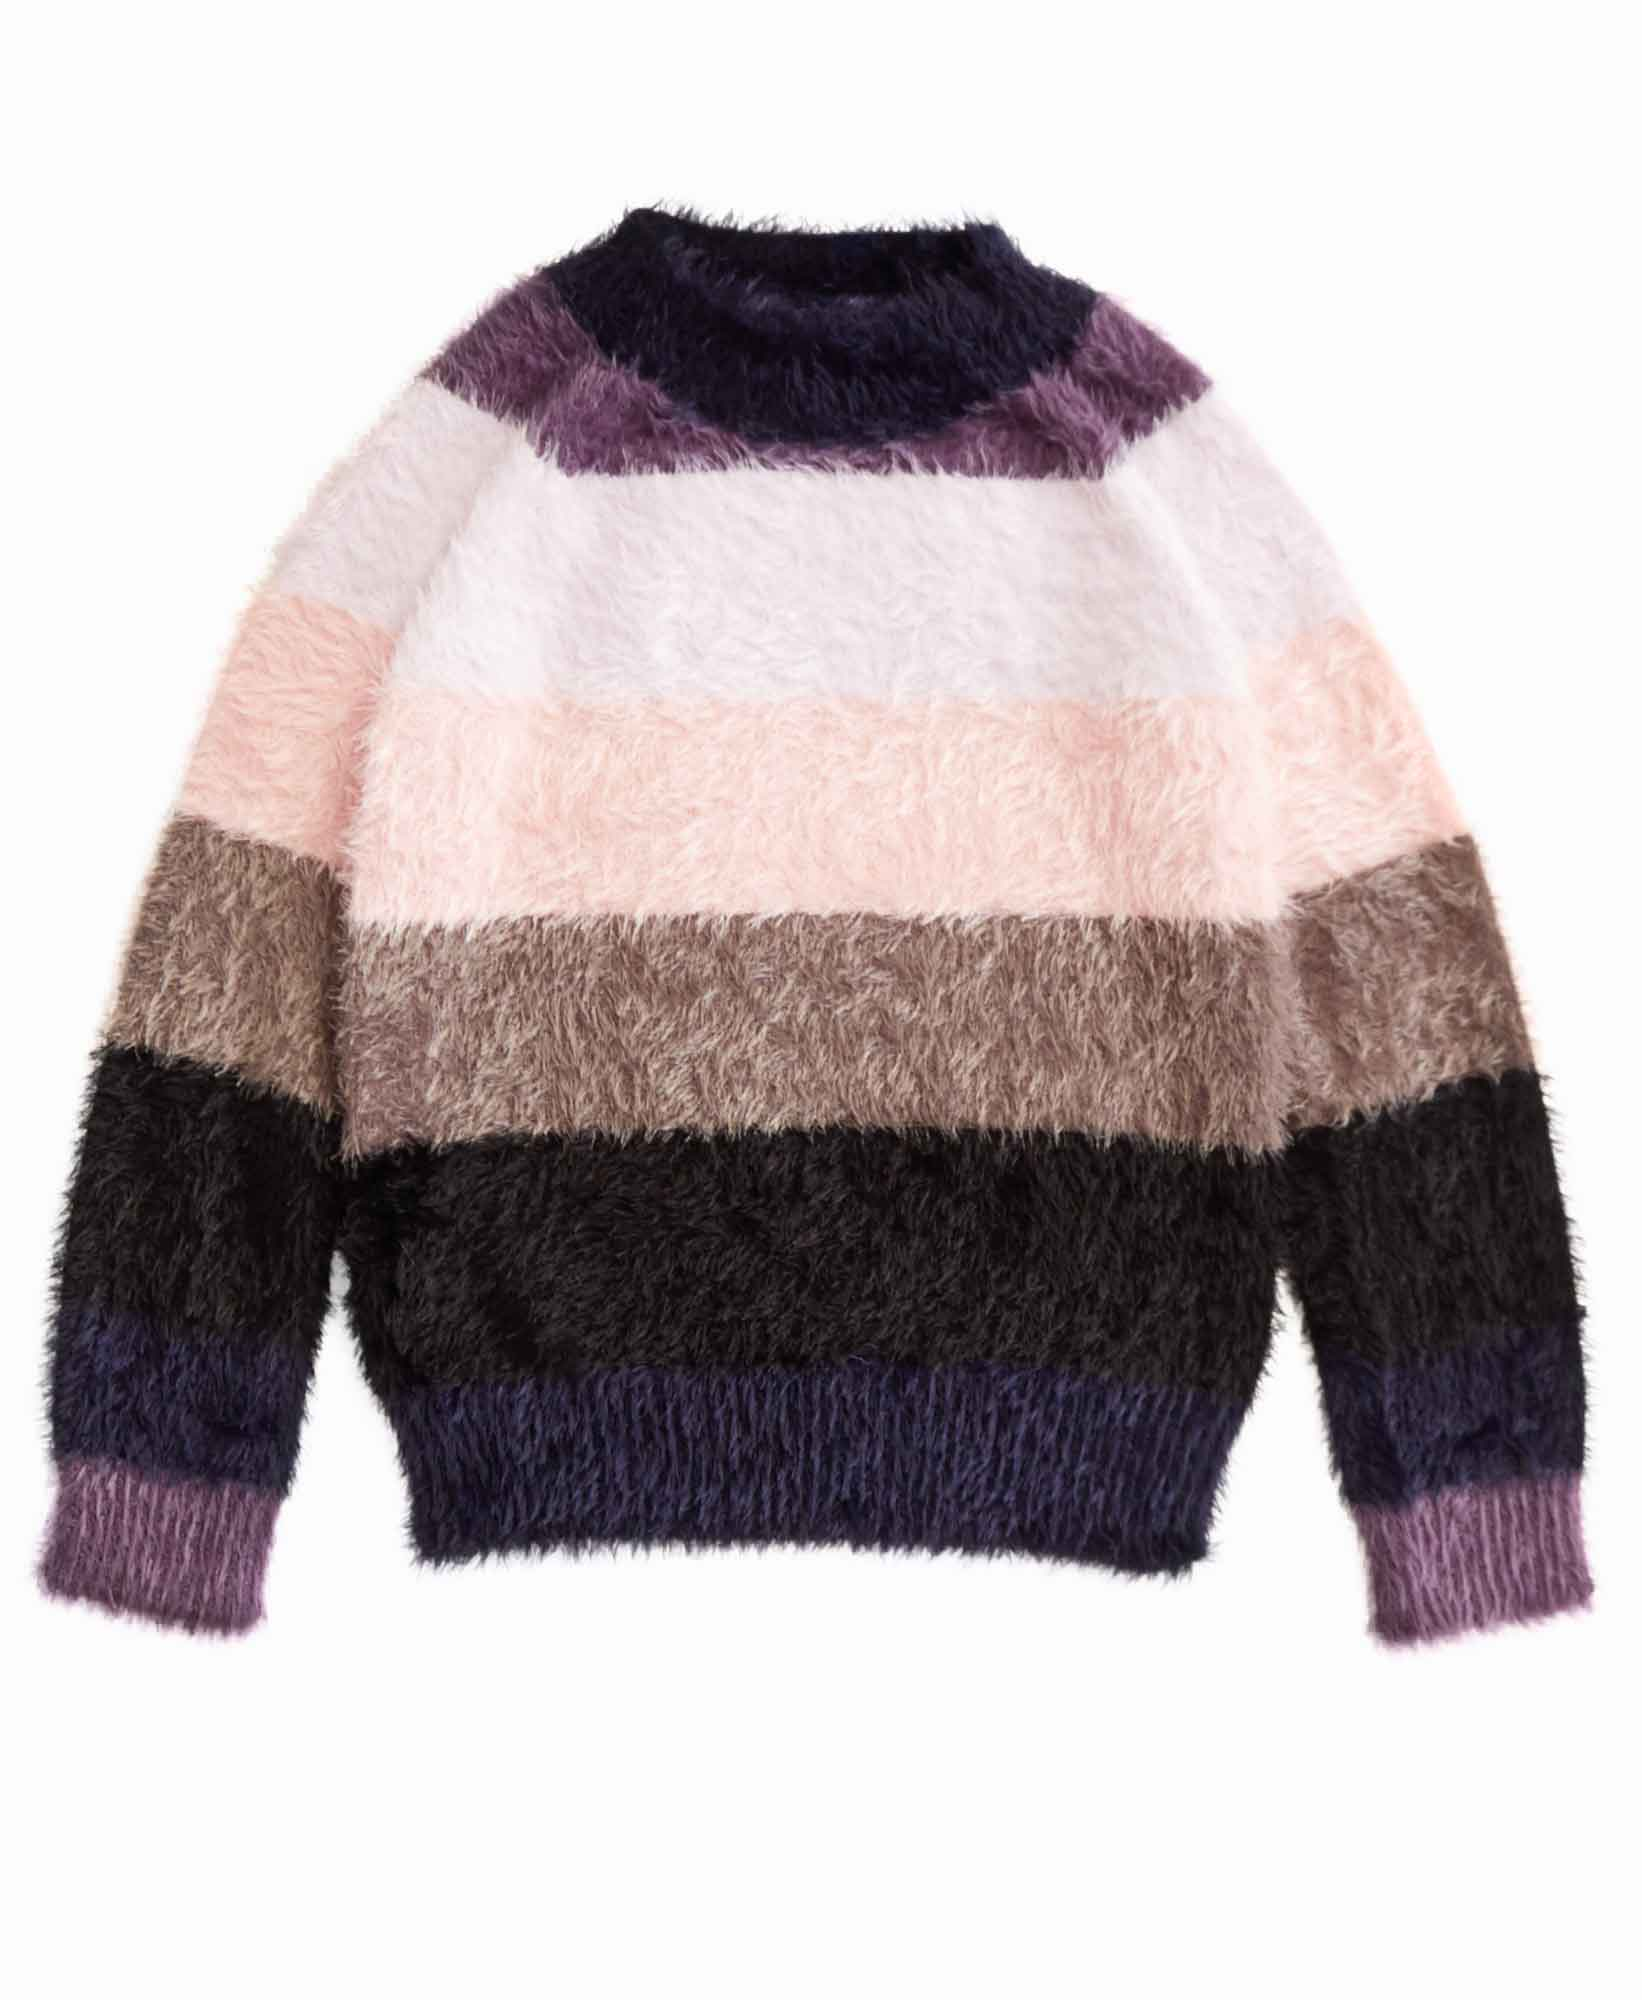 Imoga Fuzzy Stripe Sweater